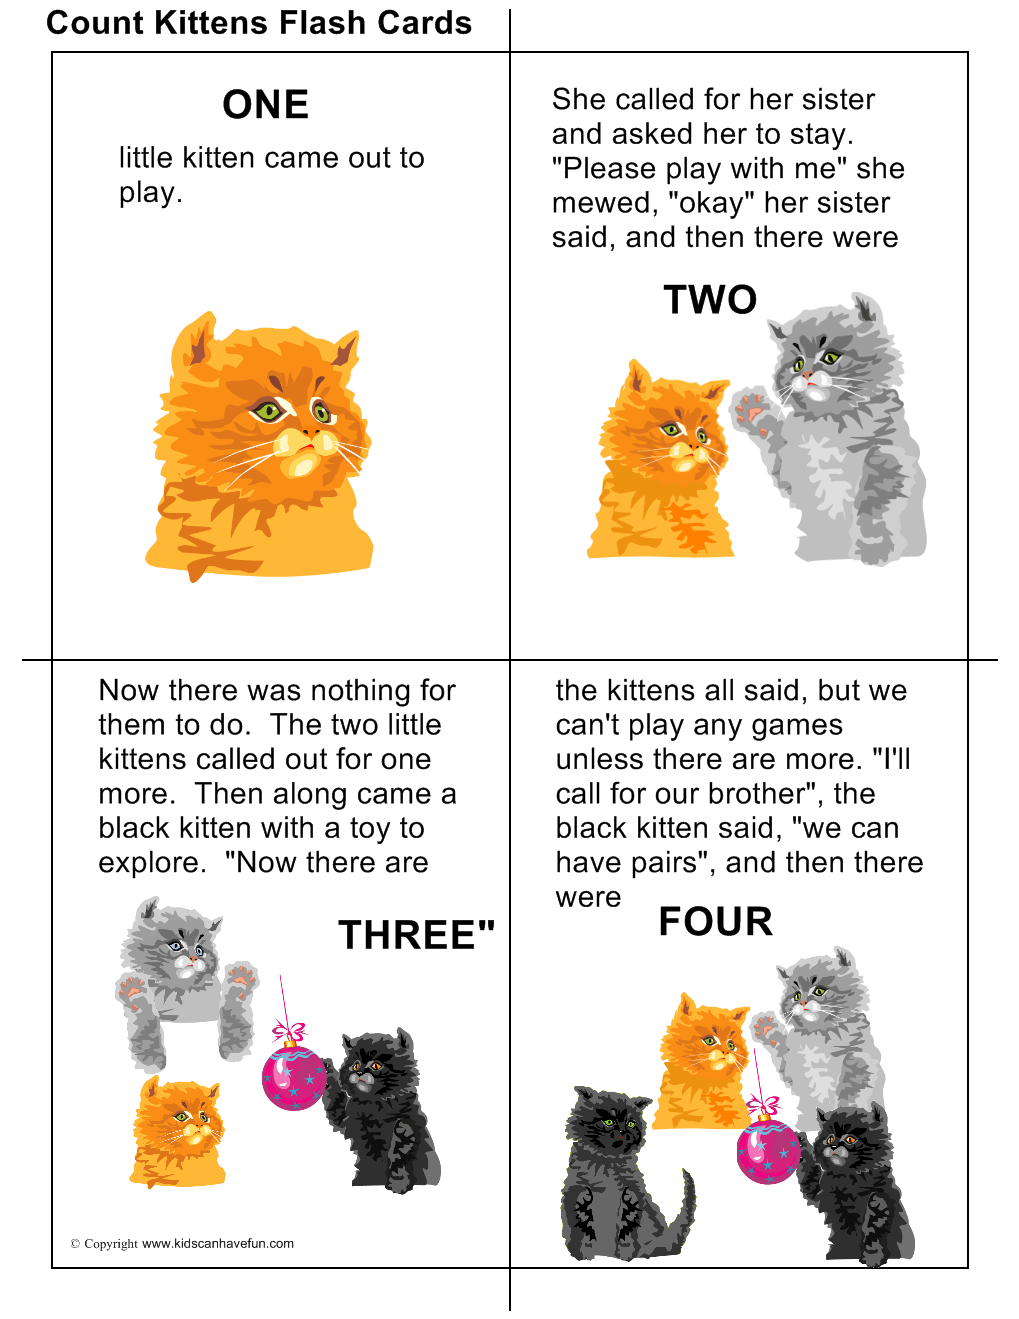 Count Kittens Flashcards With Rhyming Words Teach Kids How To Count With Kittens With Words Read And Print This Flashcards Kids Pages Printable Flash Cards